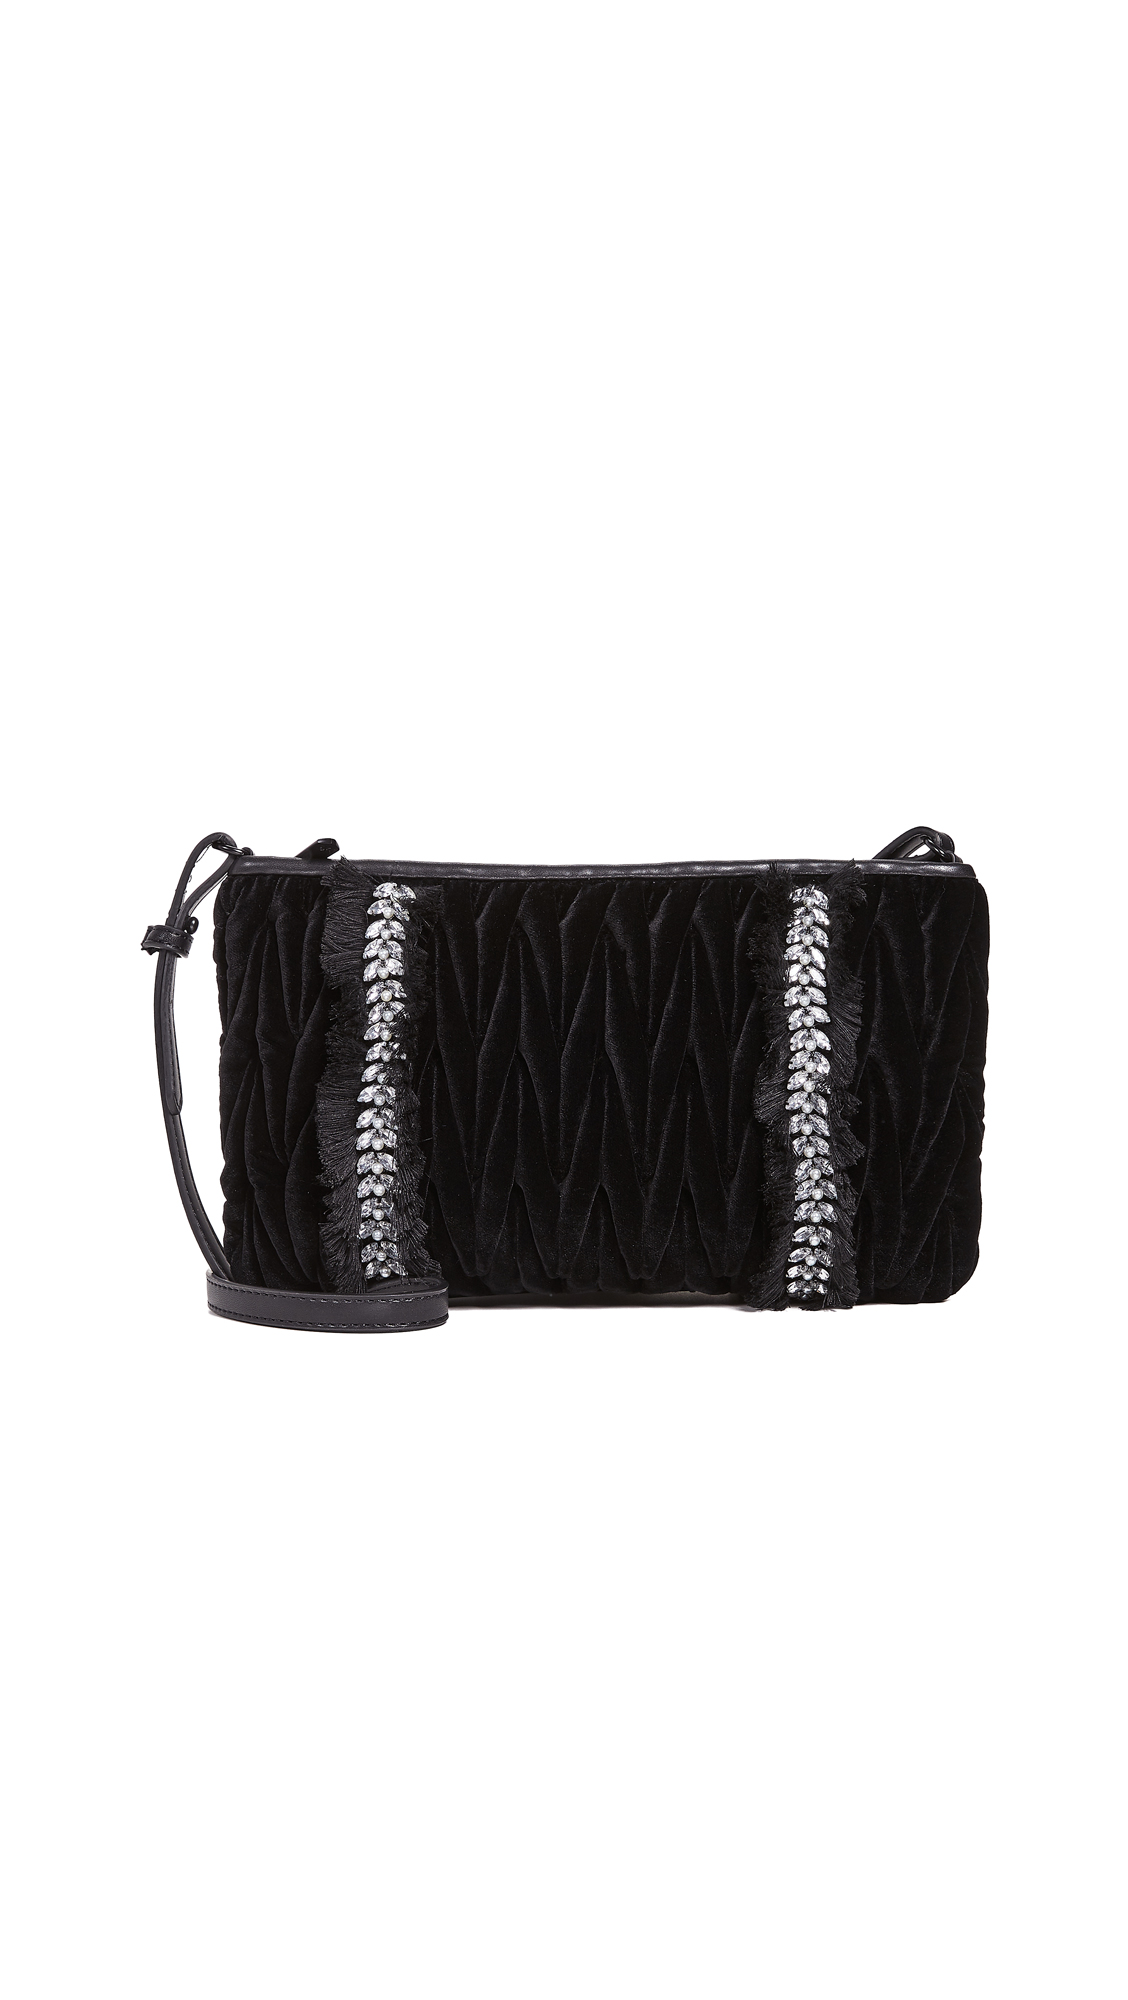 Sam Edelman Elizabella Clutch In Black